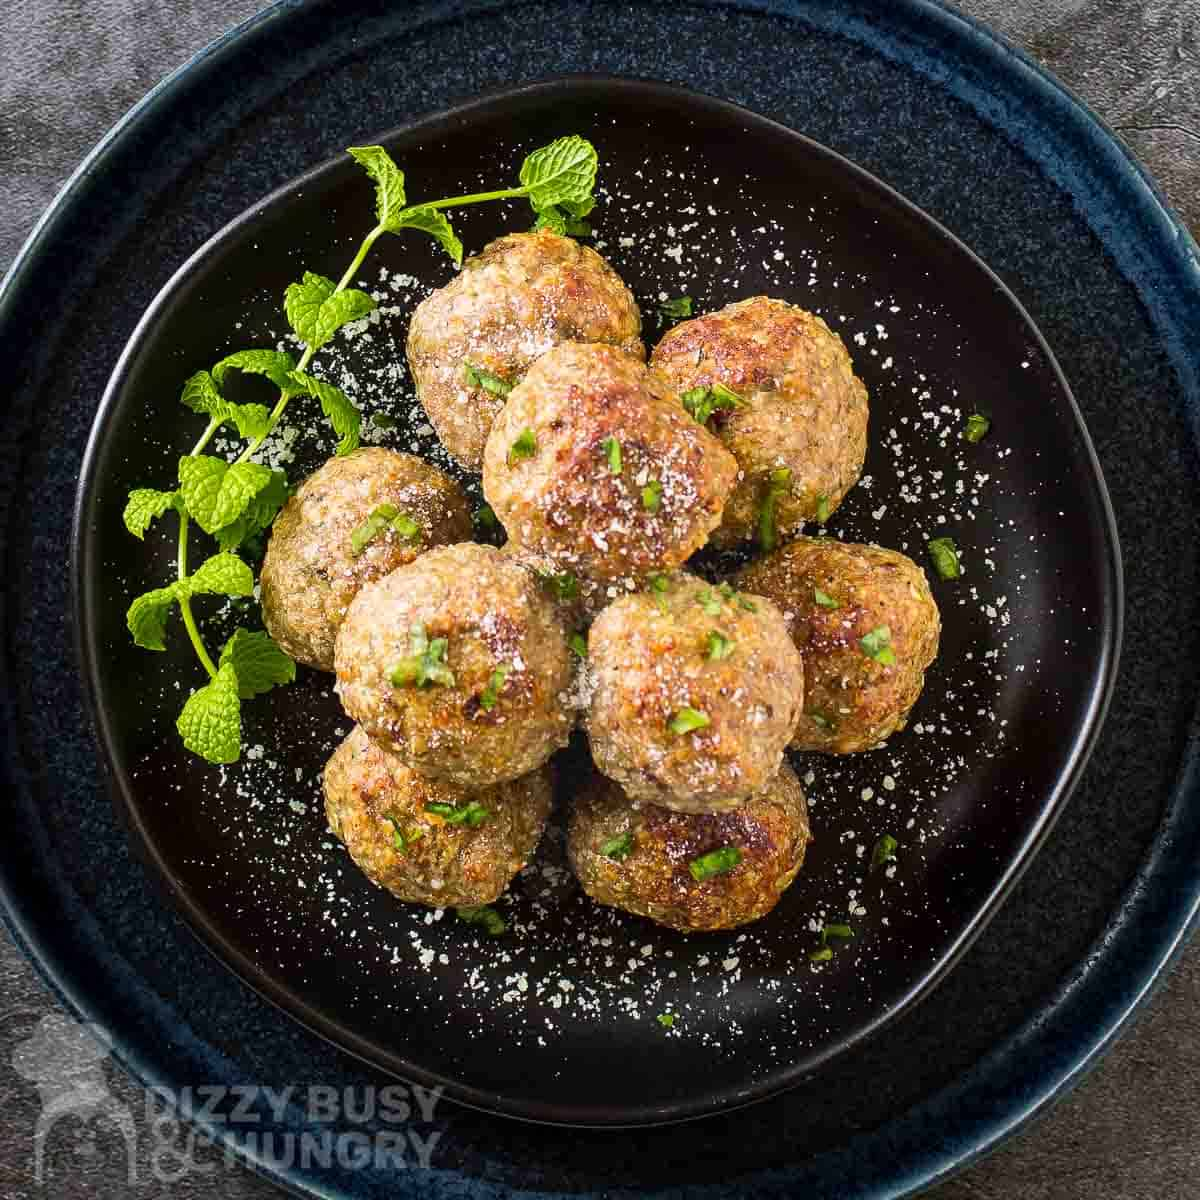 Overhead shot of multiple meatballs stacked on a black plate garnished with herbs and parmesan cheese.